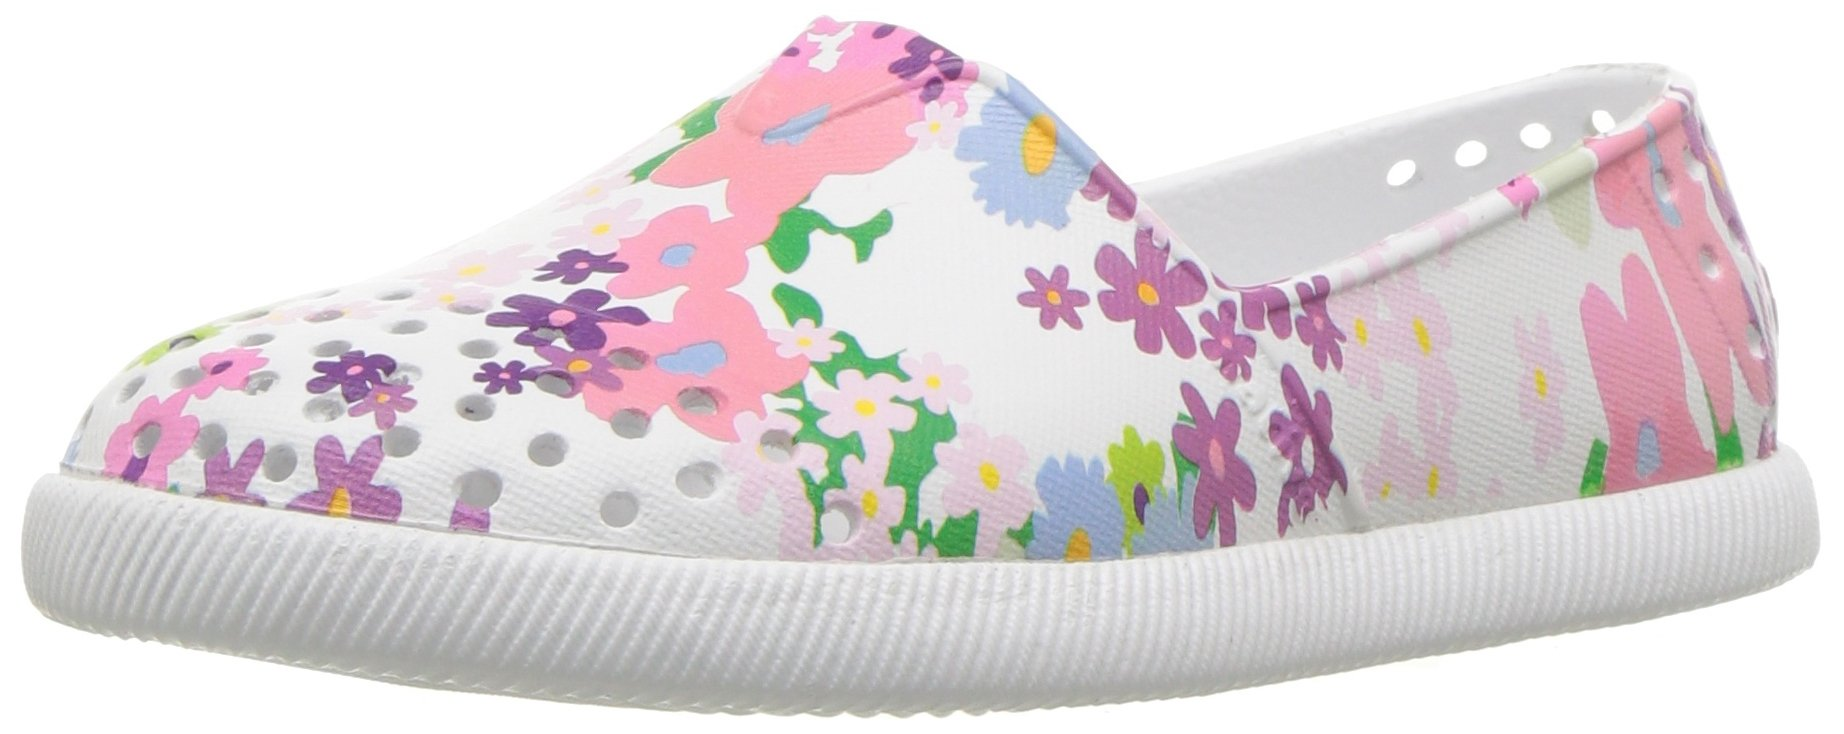 native Kids Print Verona Water Proof Shoes, Shell White/Shell White/Daisy Chain, 13 Medium US Little Kid